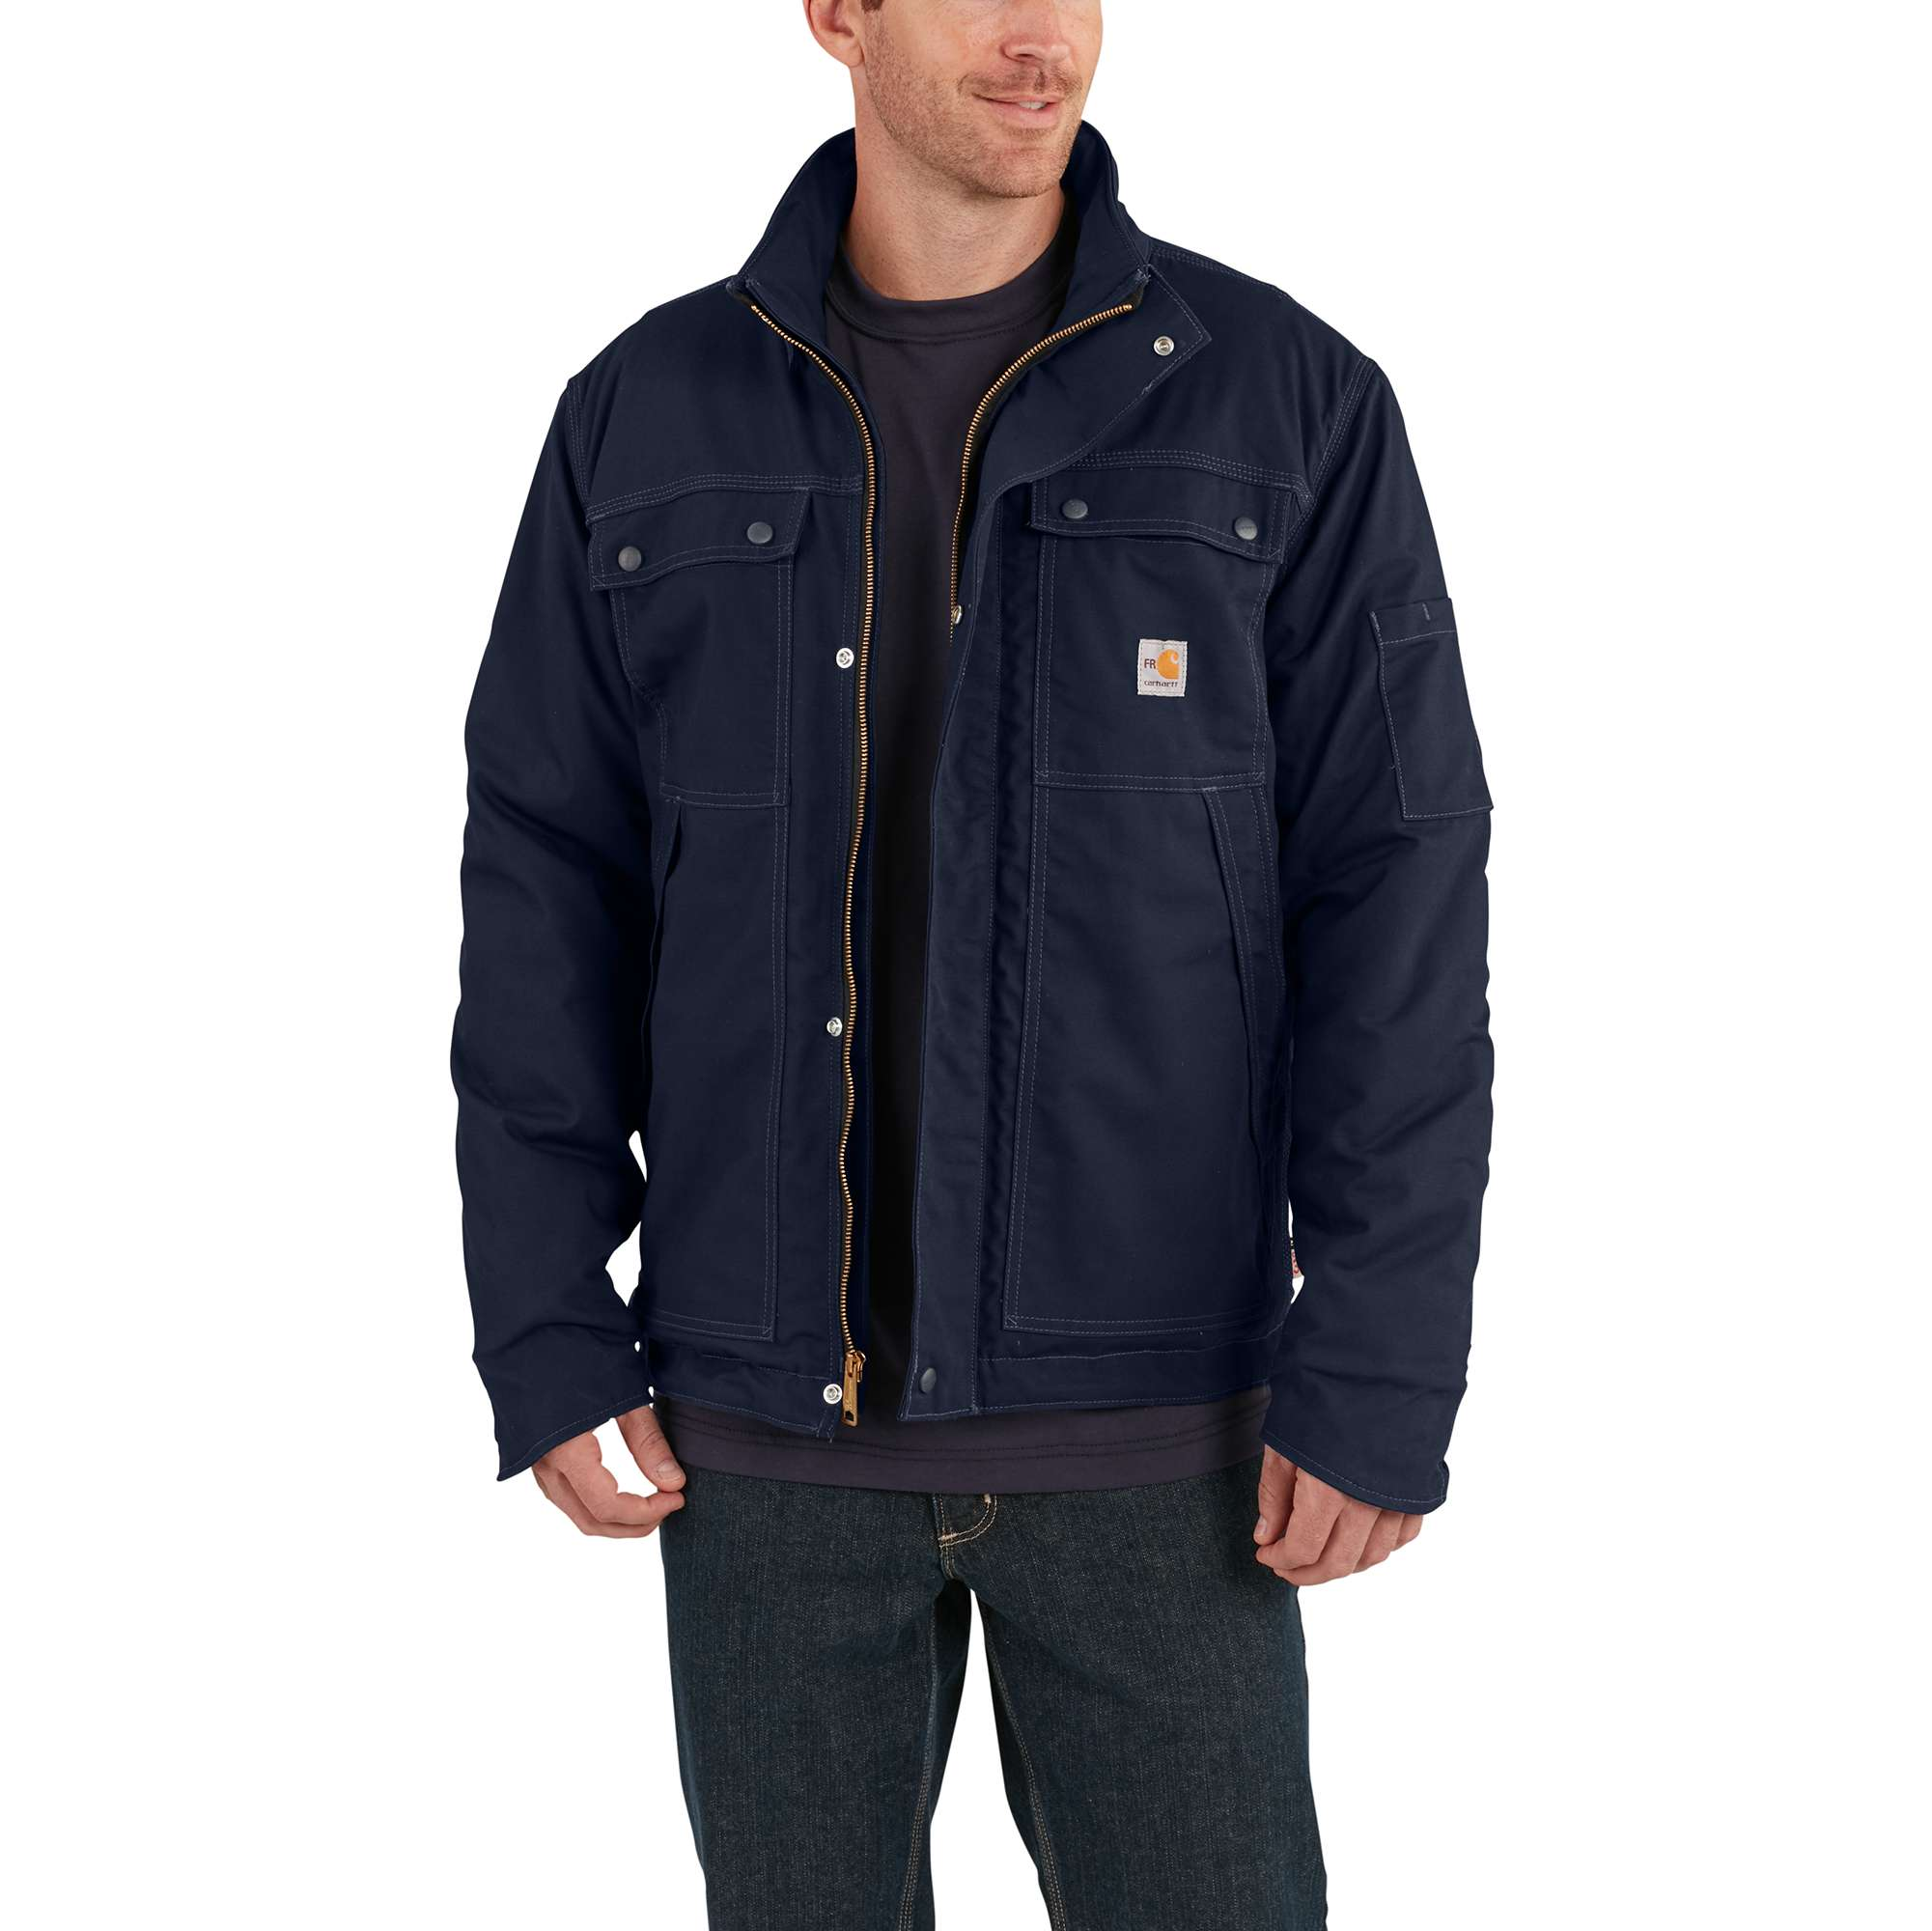 Carhartt Full Swing Quick Duck Flame-Resistant Coat